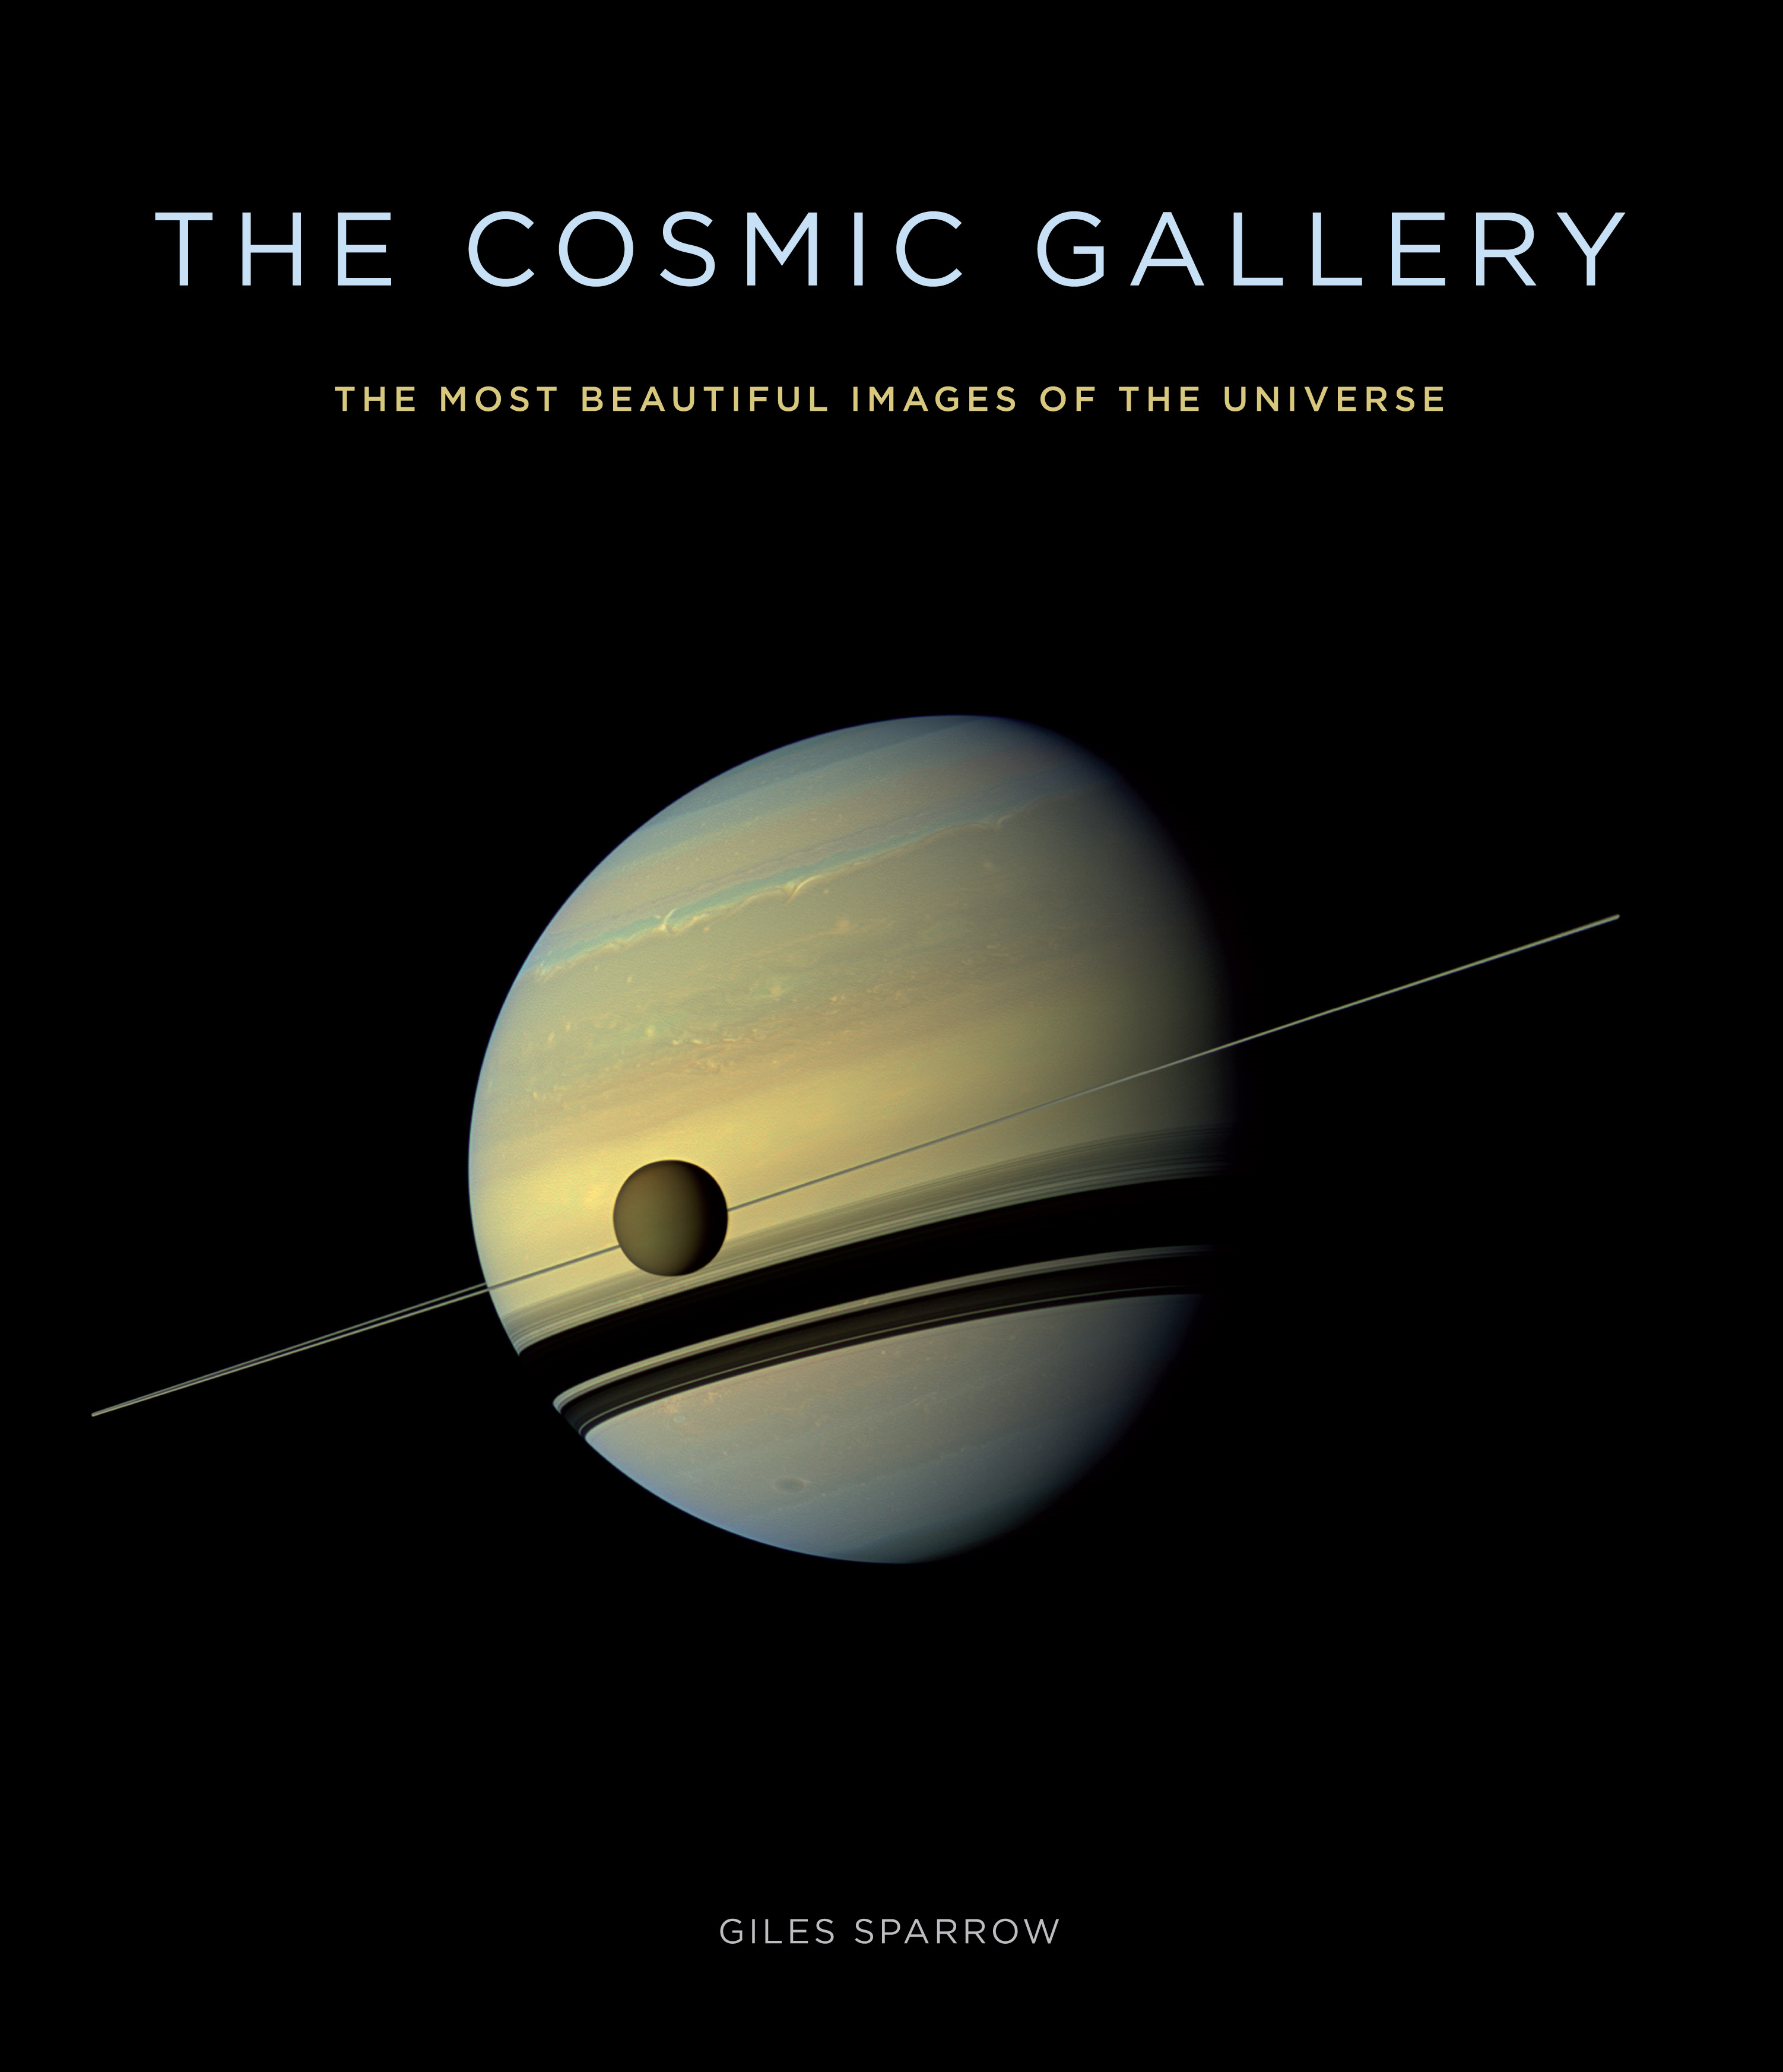 The Cosmic Gallery The Most Beautiful Images of the Universe